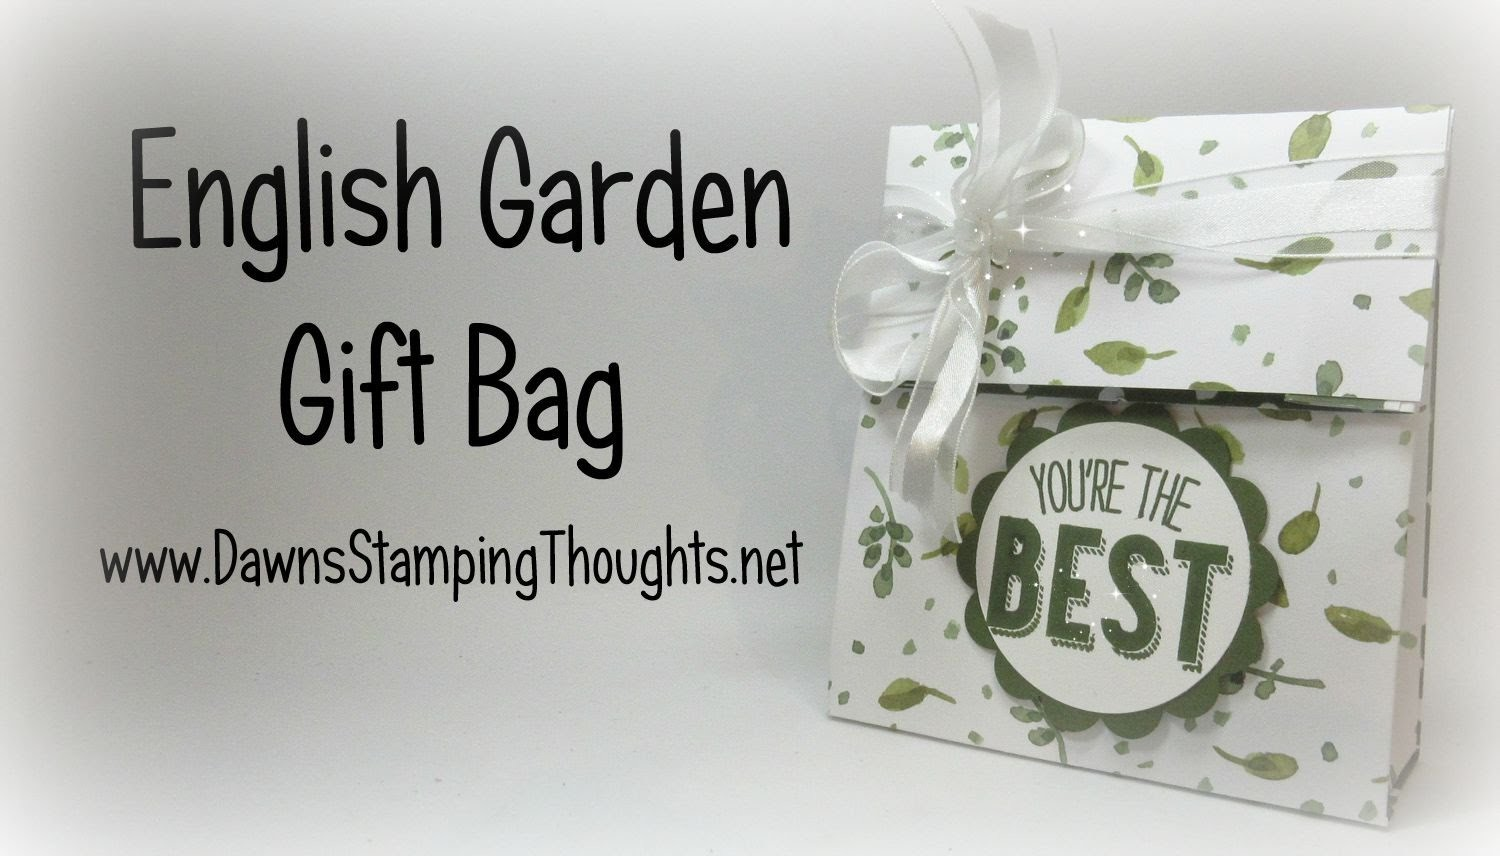 Stampin'Up! English Garden Gift Bag with  Dawn